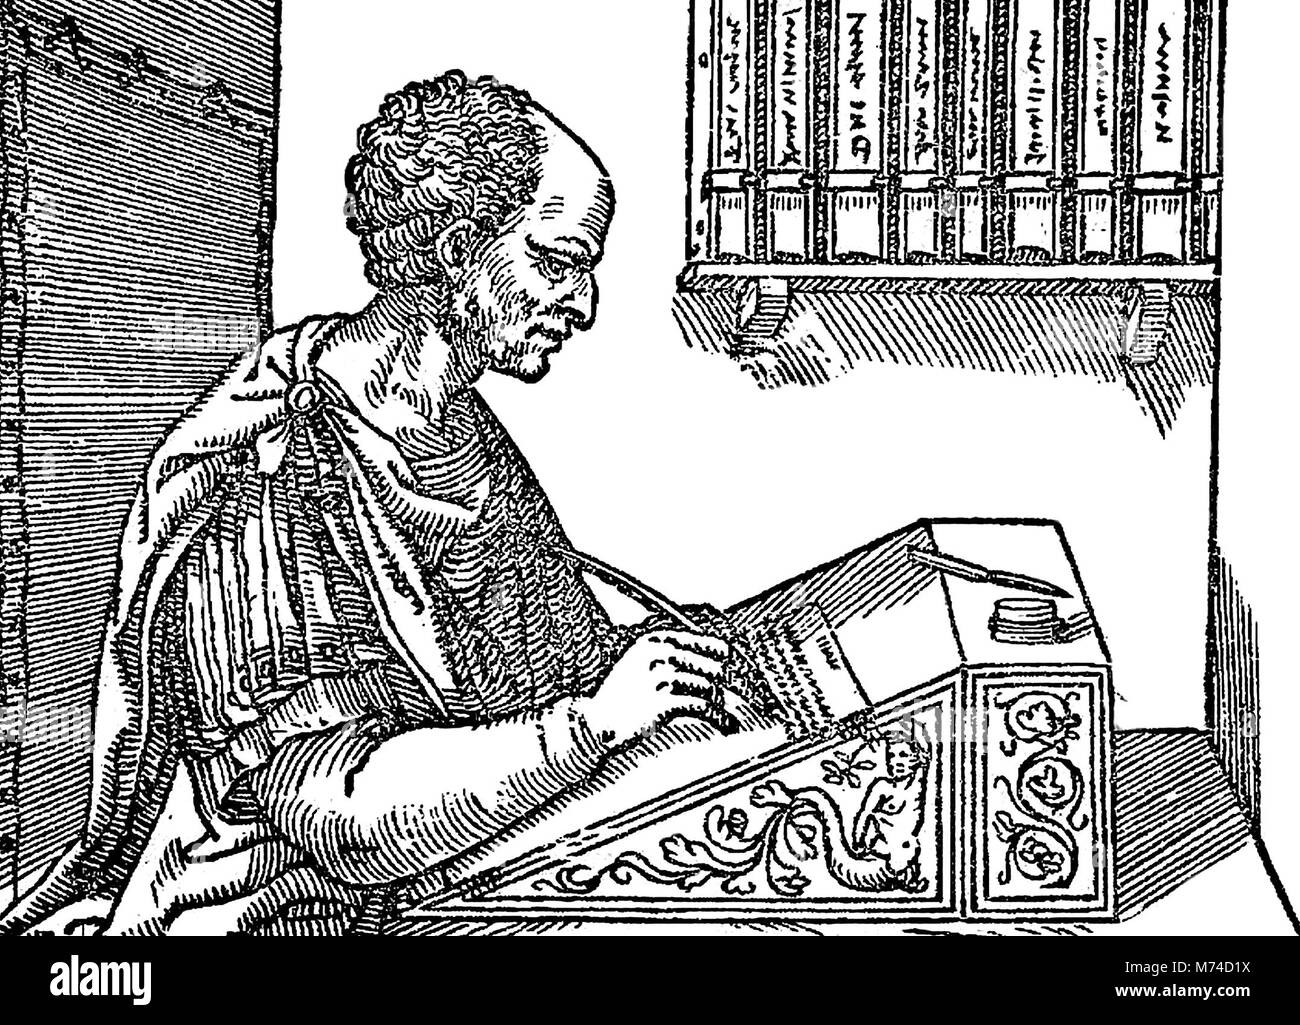 Cicero (106 BC - 43BC) writing his letters, a woodcut of Marcus Tullius Cicero dating from 1547. - Stock Image